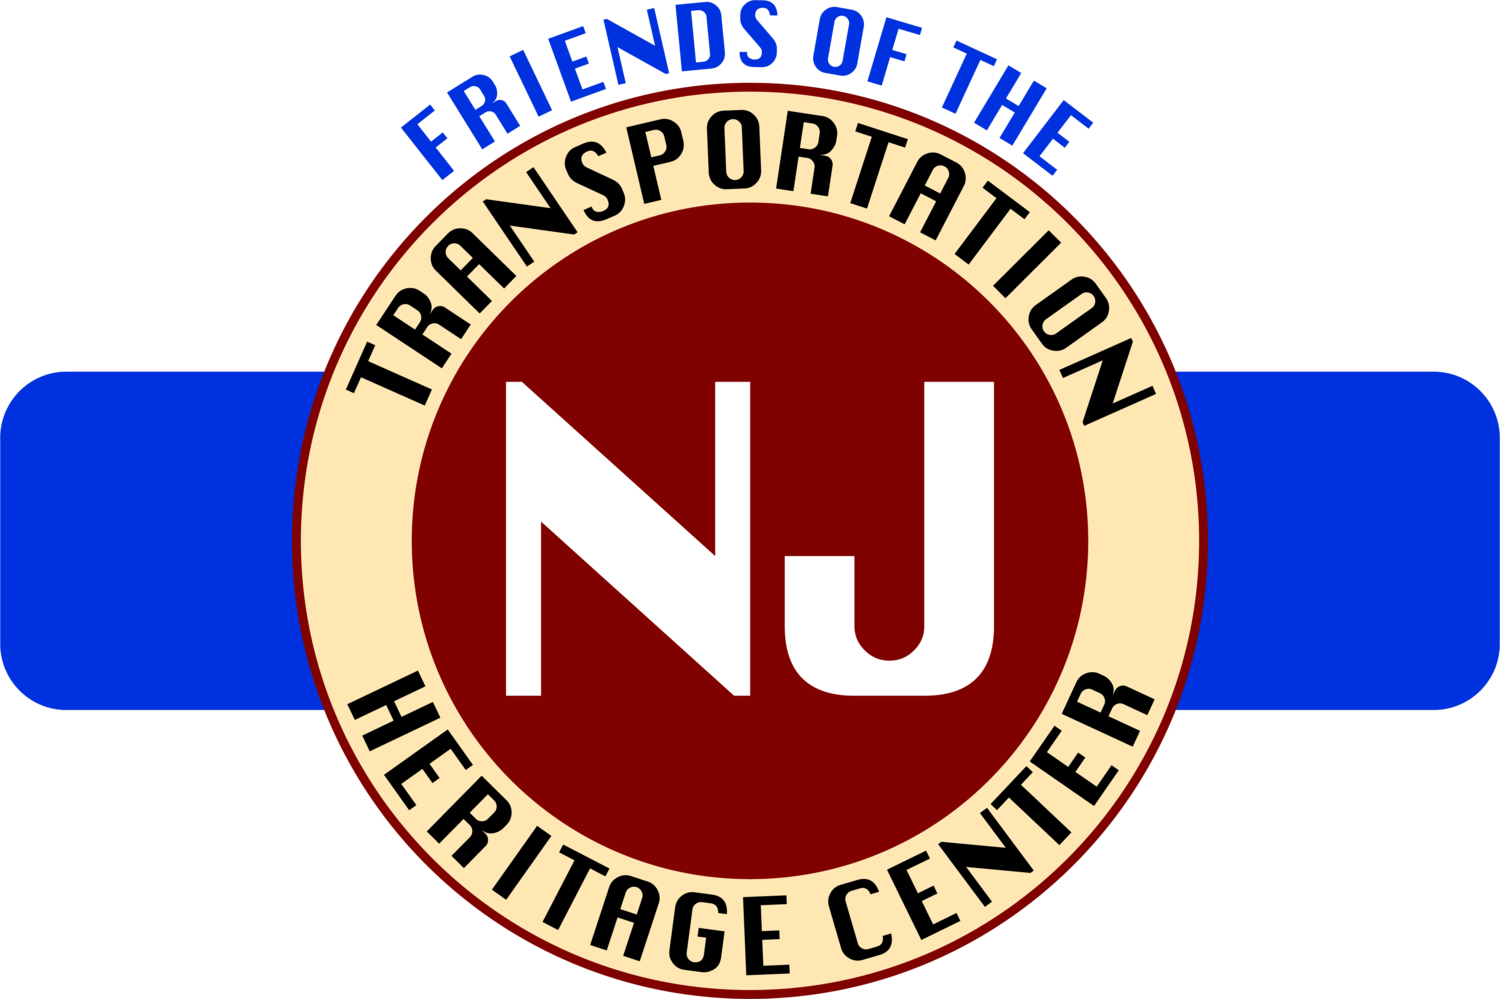 Friends of the New Jersey Transportation Heritage Center